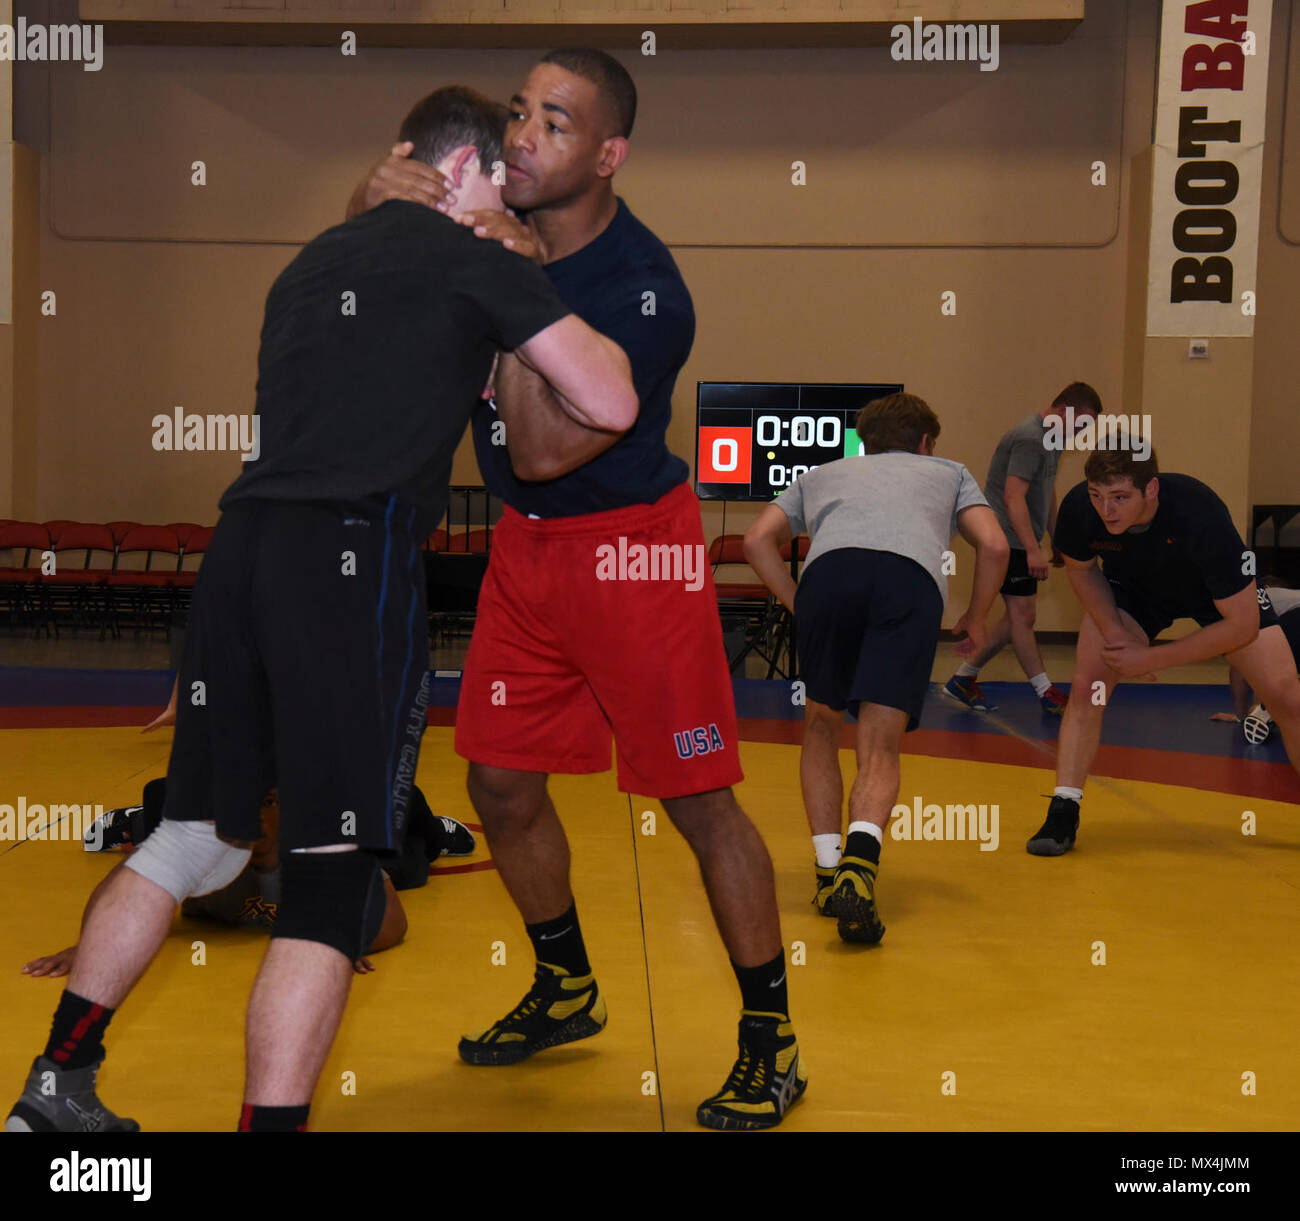 Sherwin Severin, Air Force Wrestling team member, practices with a teammate before the Senior Greco-Roman World team trials in Las Vegas, Nev., April 29, 2017. Severin wrestles in the 85 kilogram weight class. He is stationed at F.E. Warren Air Force Base, Wyo. - Stock Image